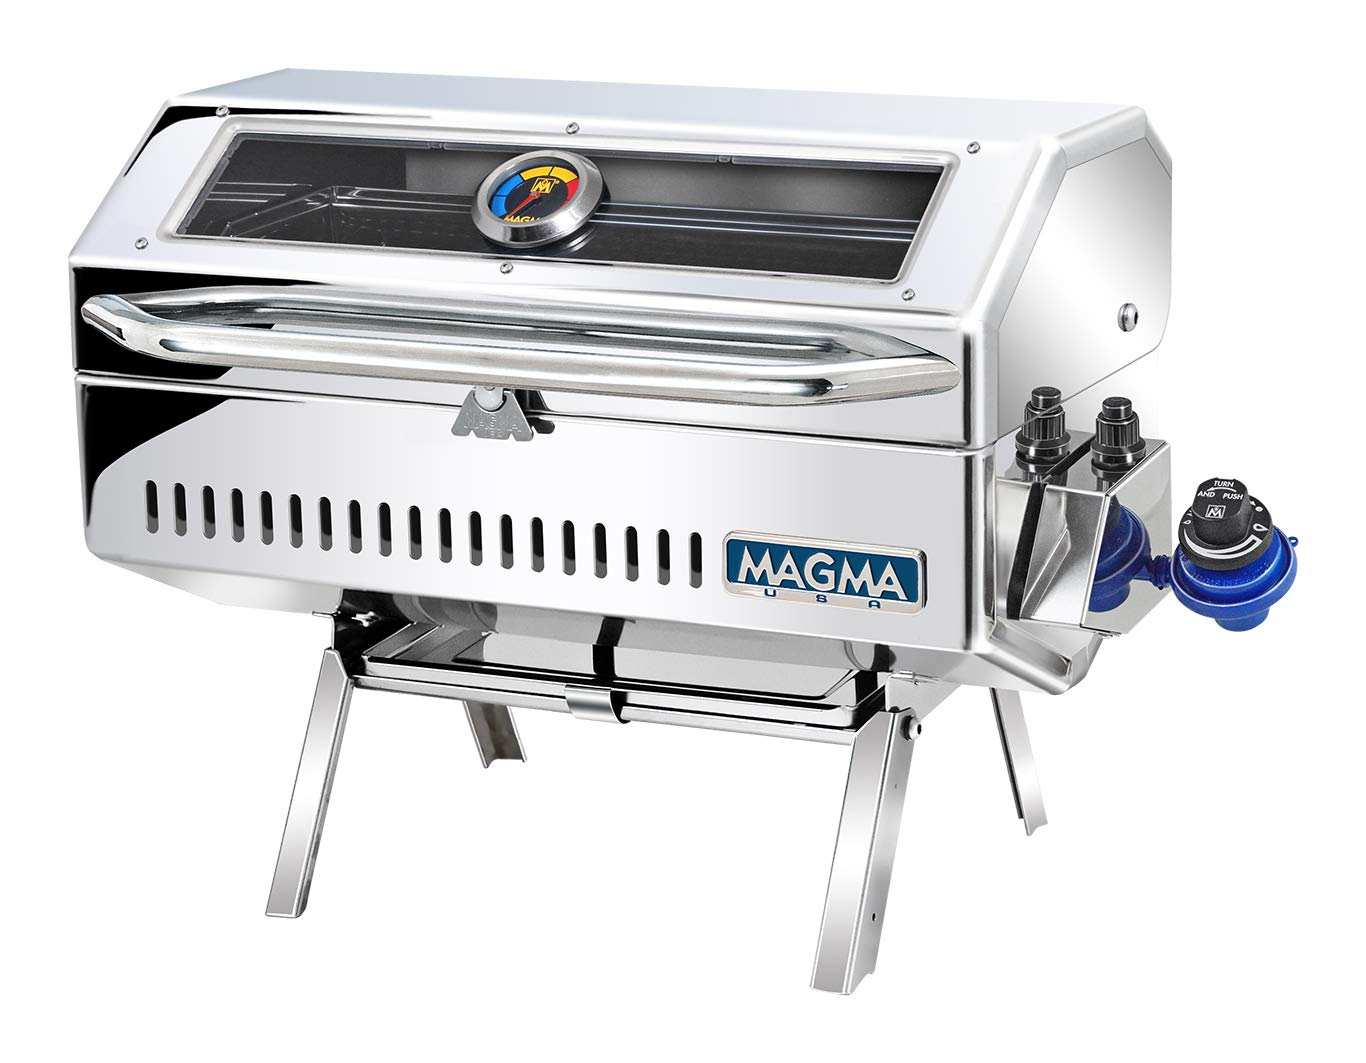 Magma Products, A10-918-2GS Newport 2 Infra Red Gourmet Series Gas Grill, Polished Stainless Steel by Magma